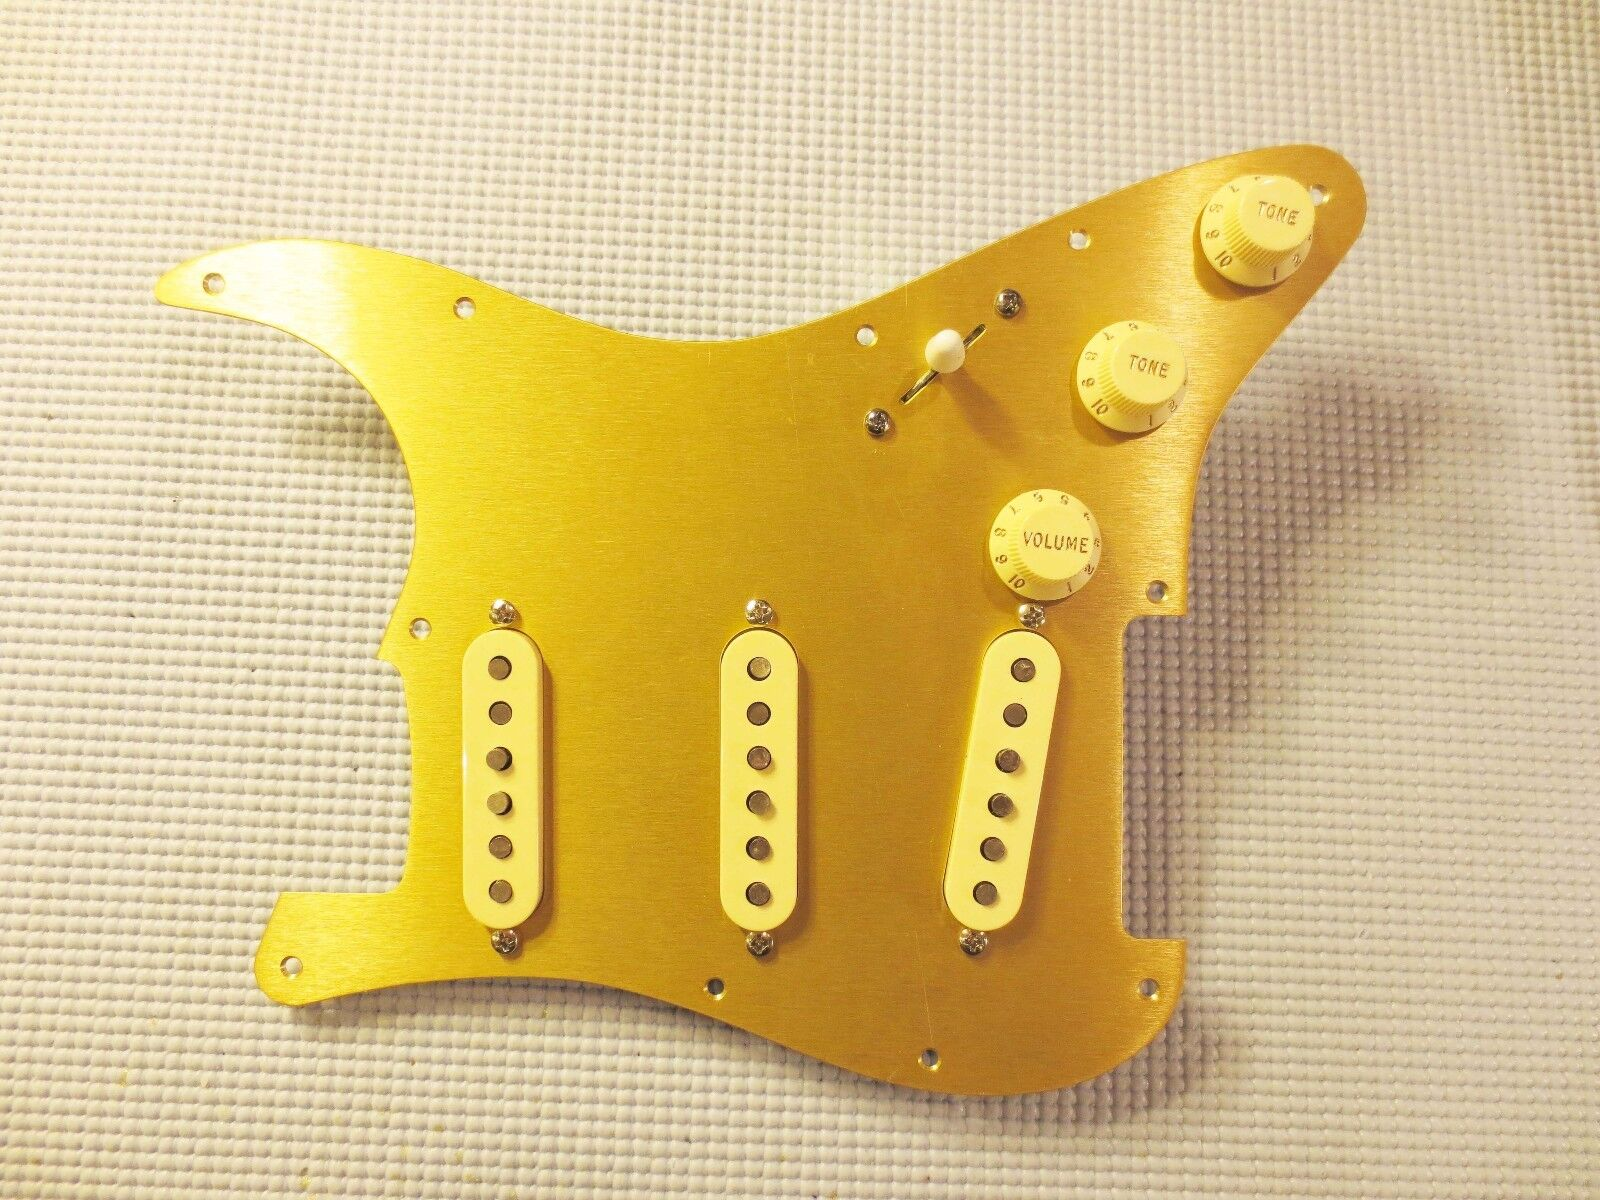 Fender Pure Vintage 65 Loaded Strat Pickguard Gold Anodized 7 Way 11 or 8 Hole